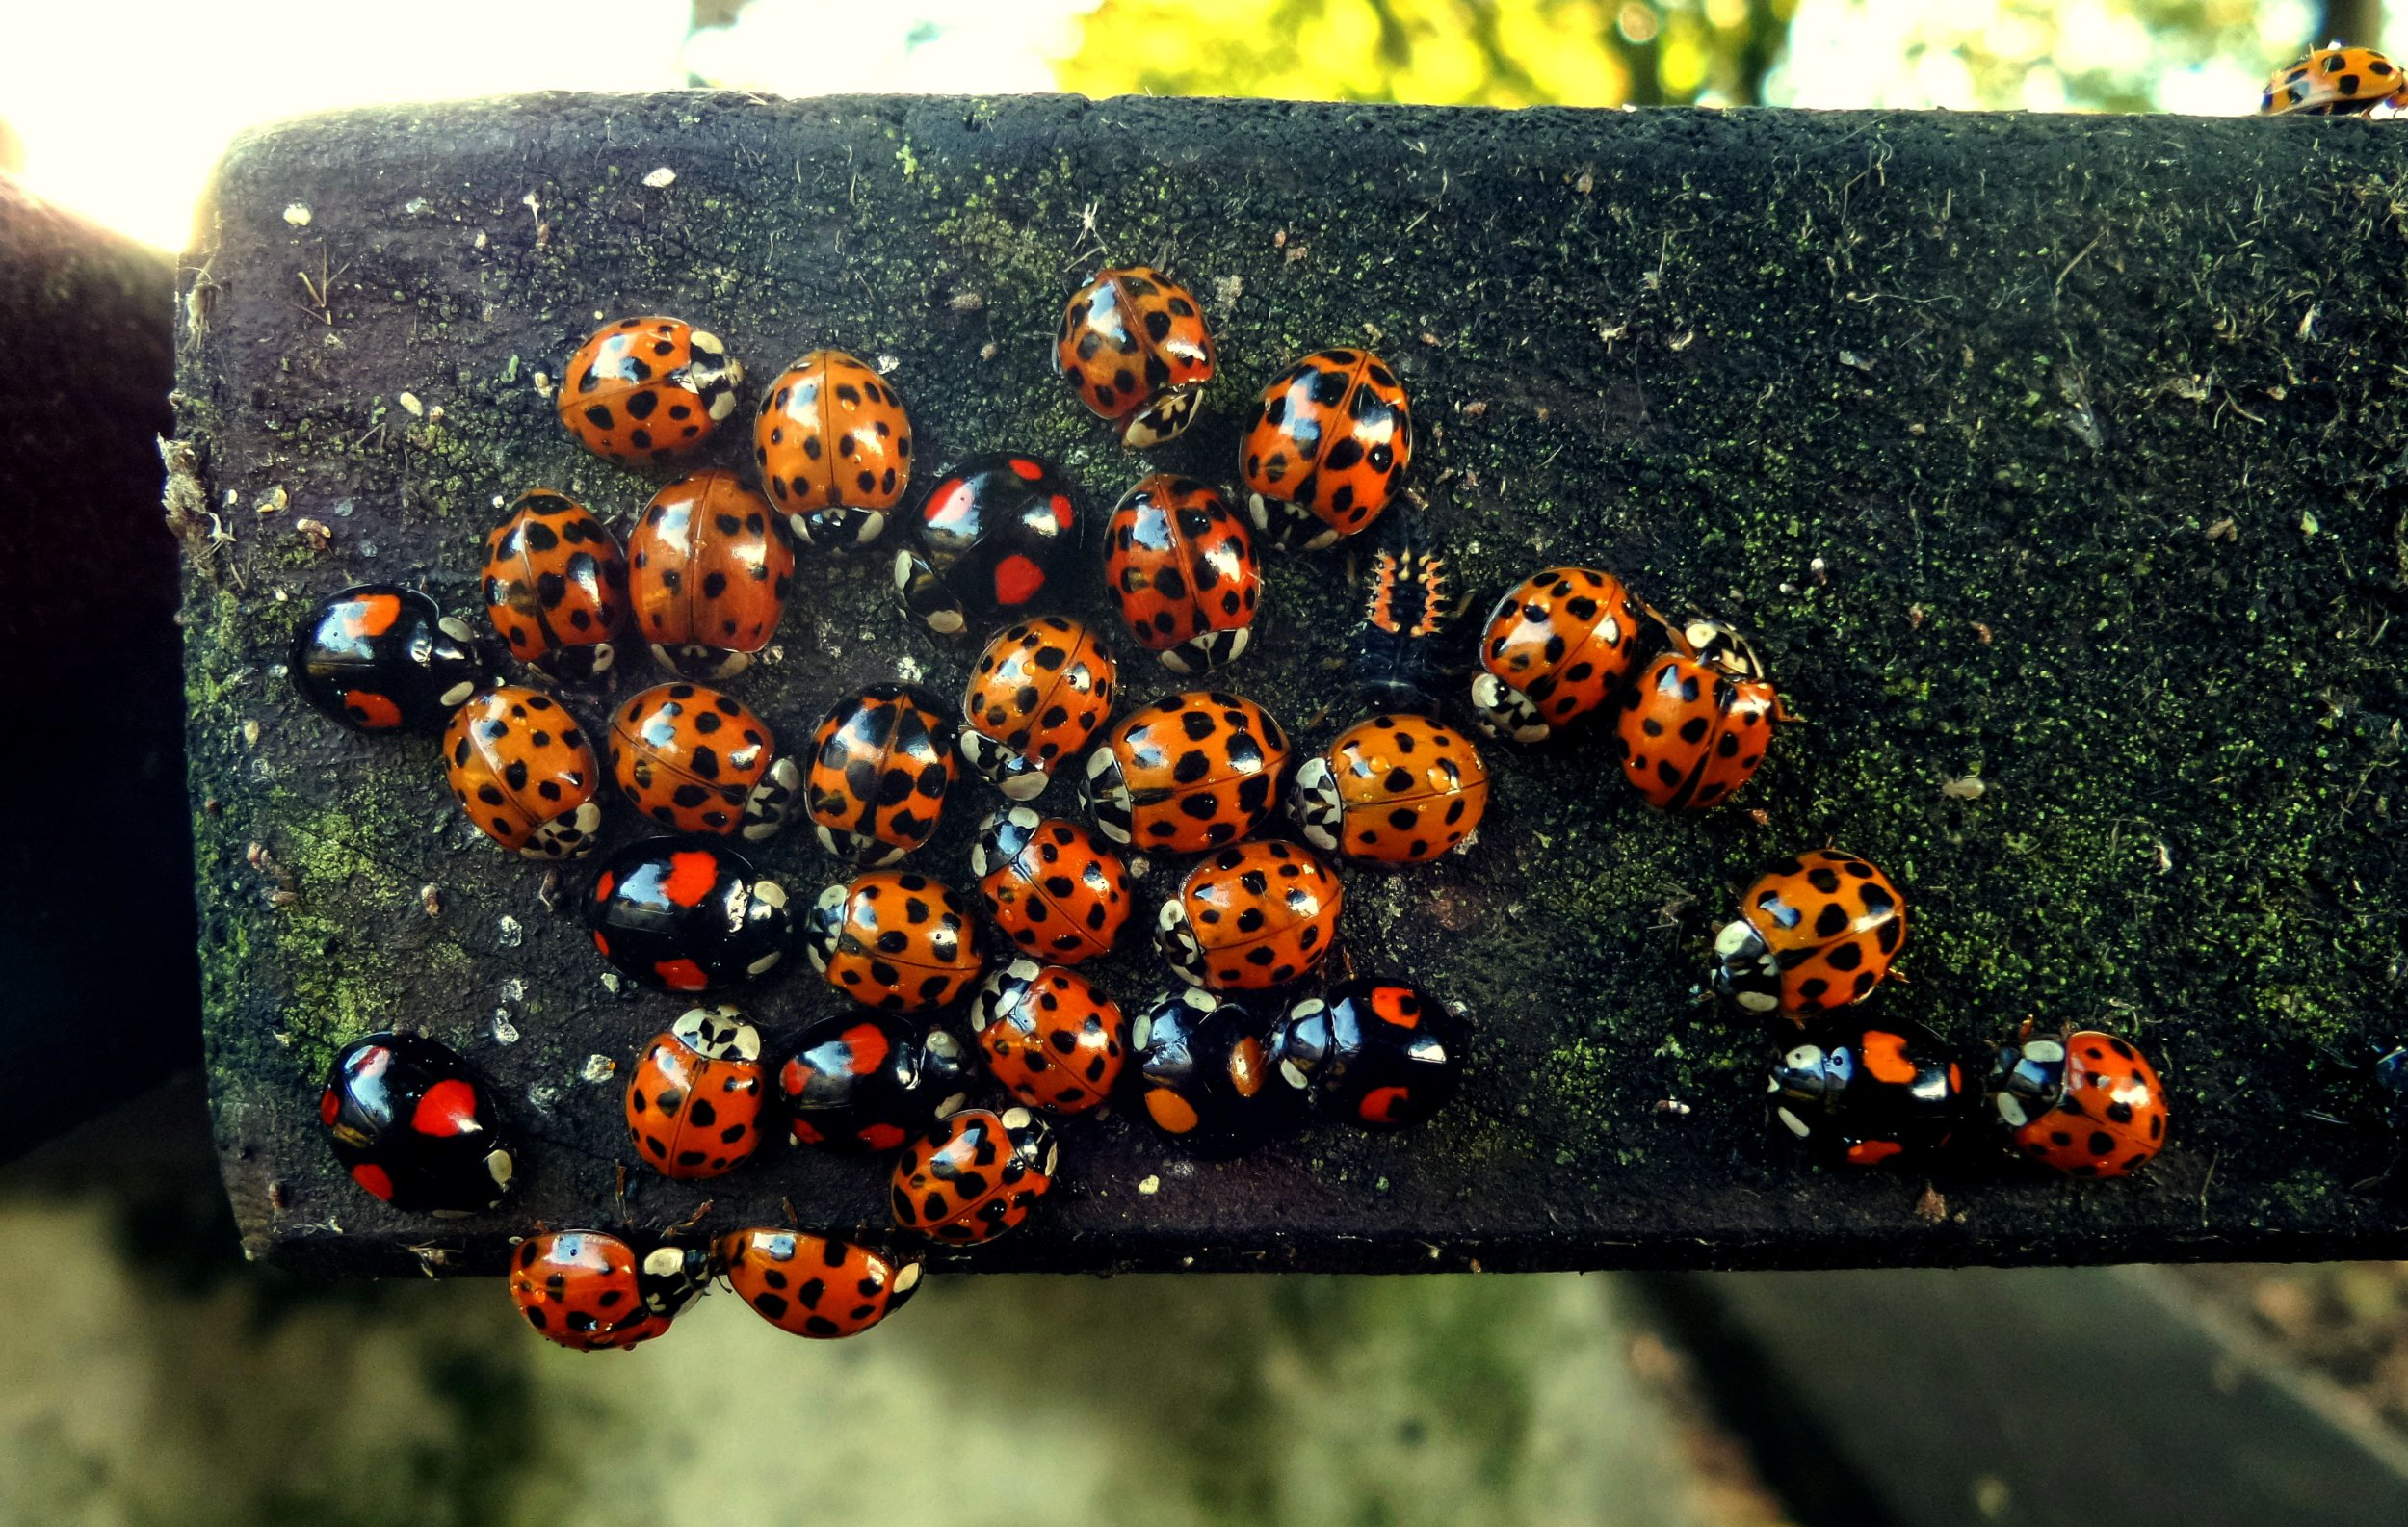 Mandatory Credit: Photo by REX/Shutterstock (4217784b) Harmonia Axyridis ladybird gathering Ladybirds on a picnic table, Swansea, South Wales - 11 Oct 2014